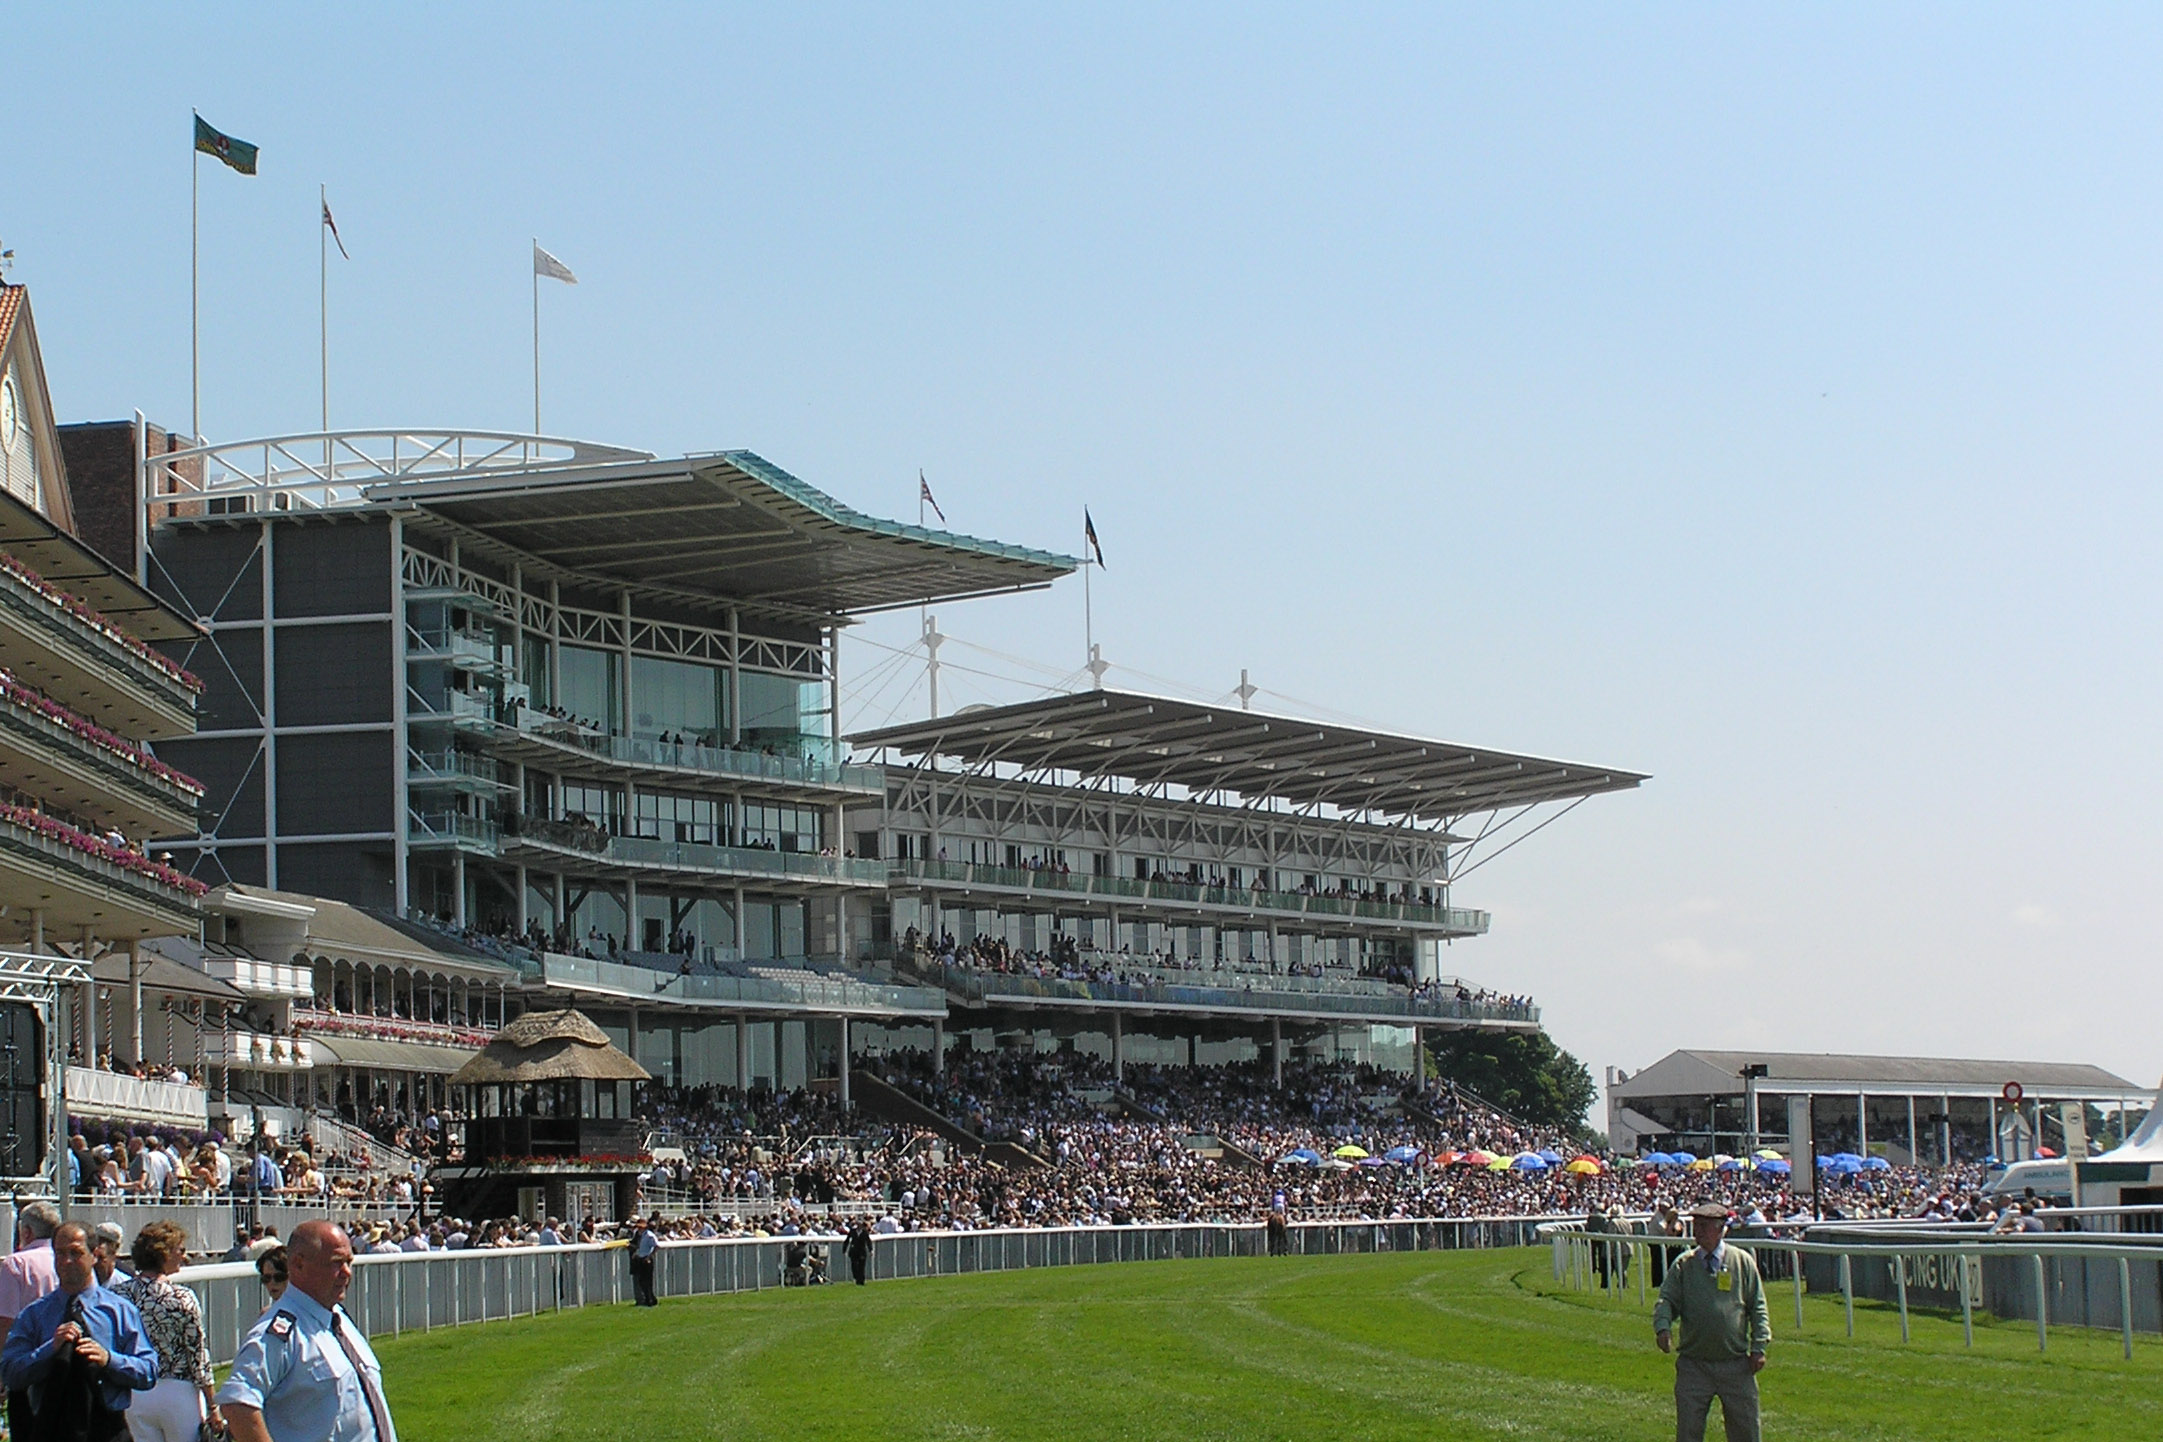 York Race Course Hotels